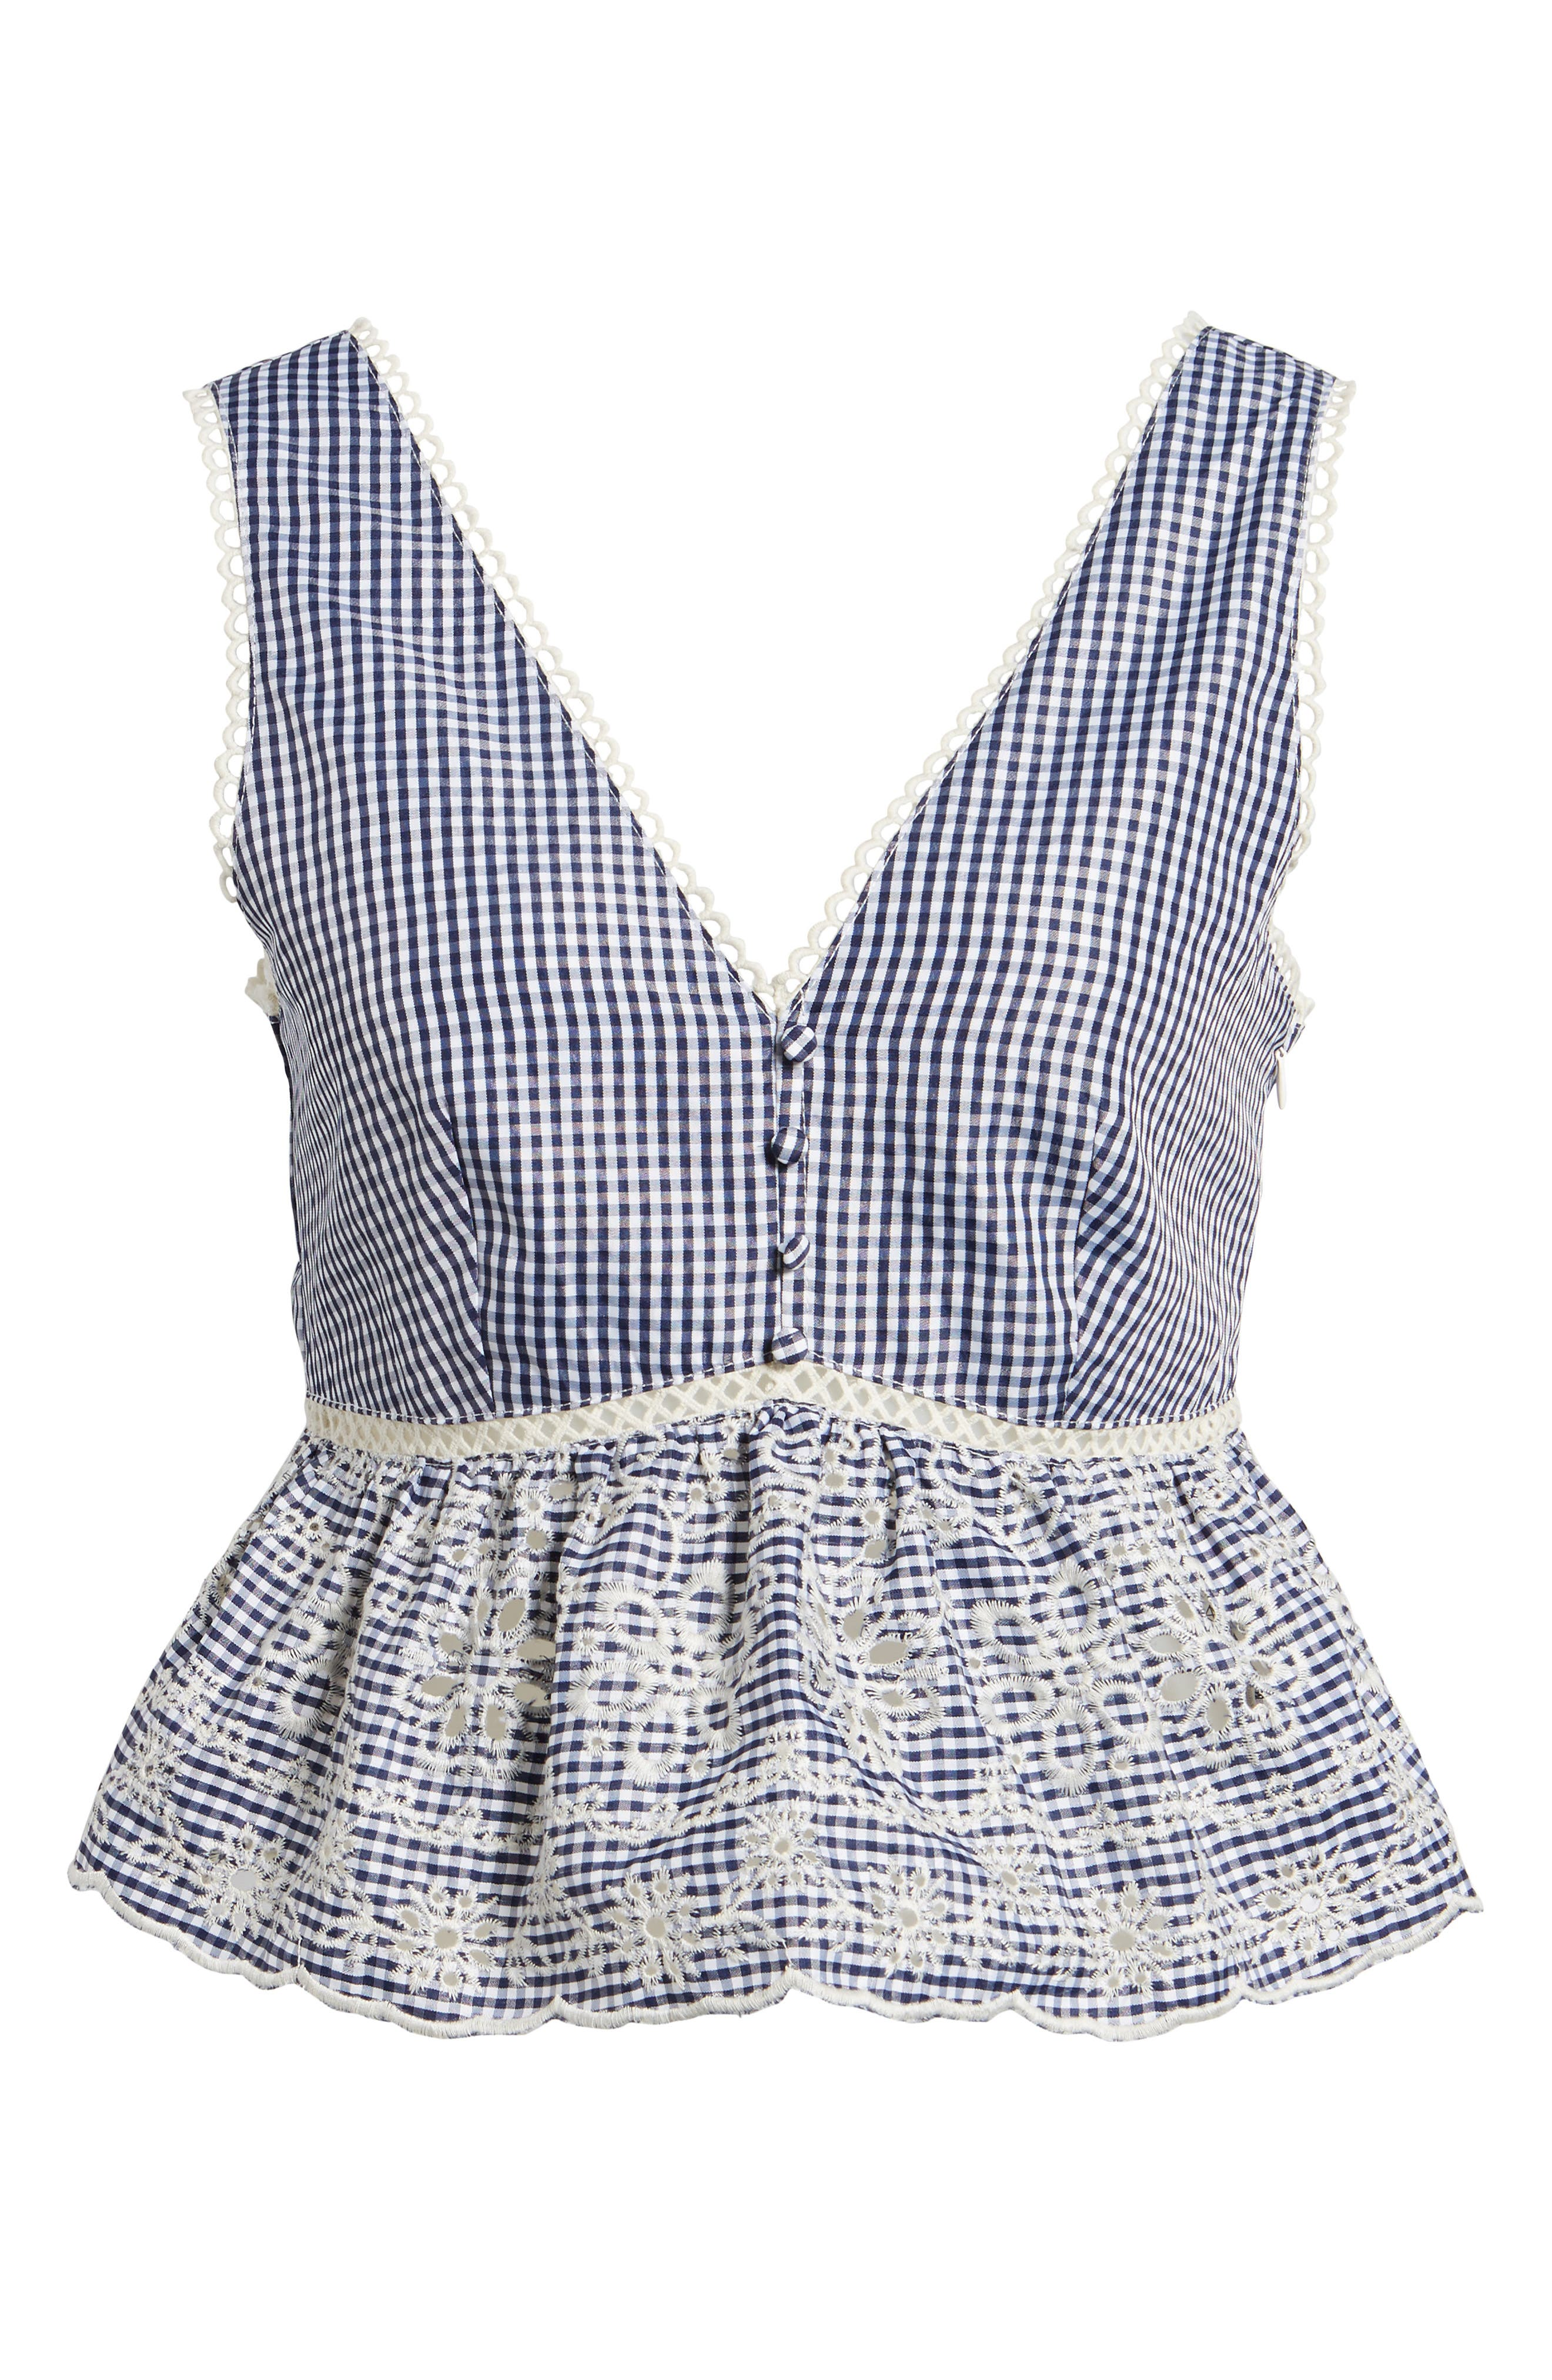 Embroidered Gingham Crop Top,                             Alternate thumbnail 6, color,                             400